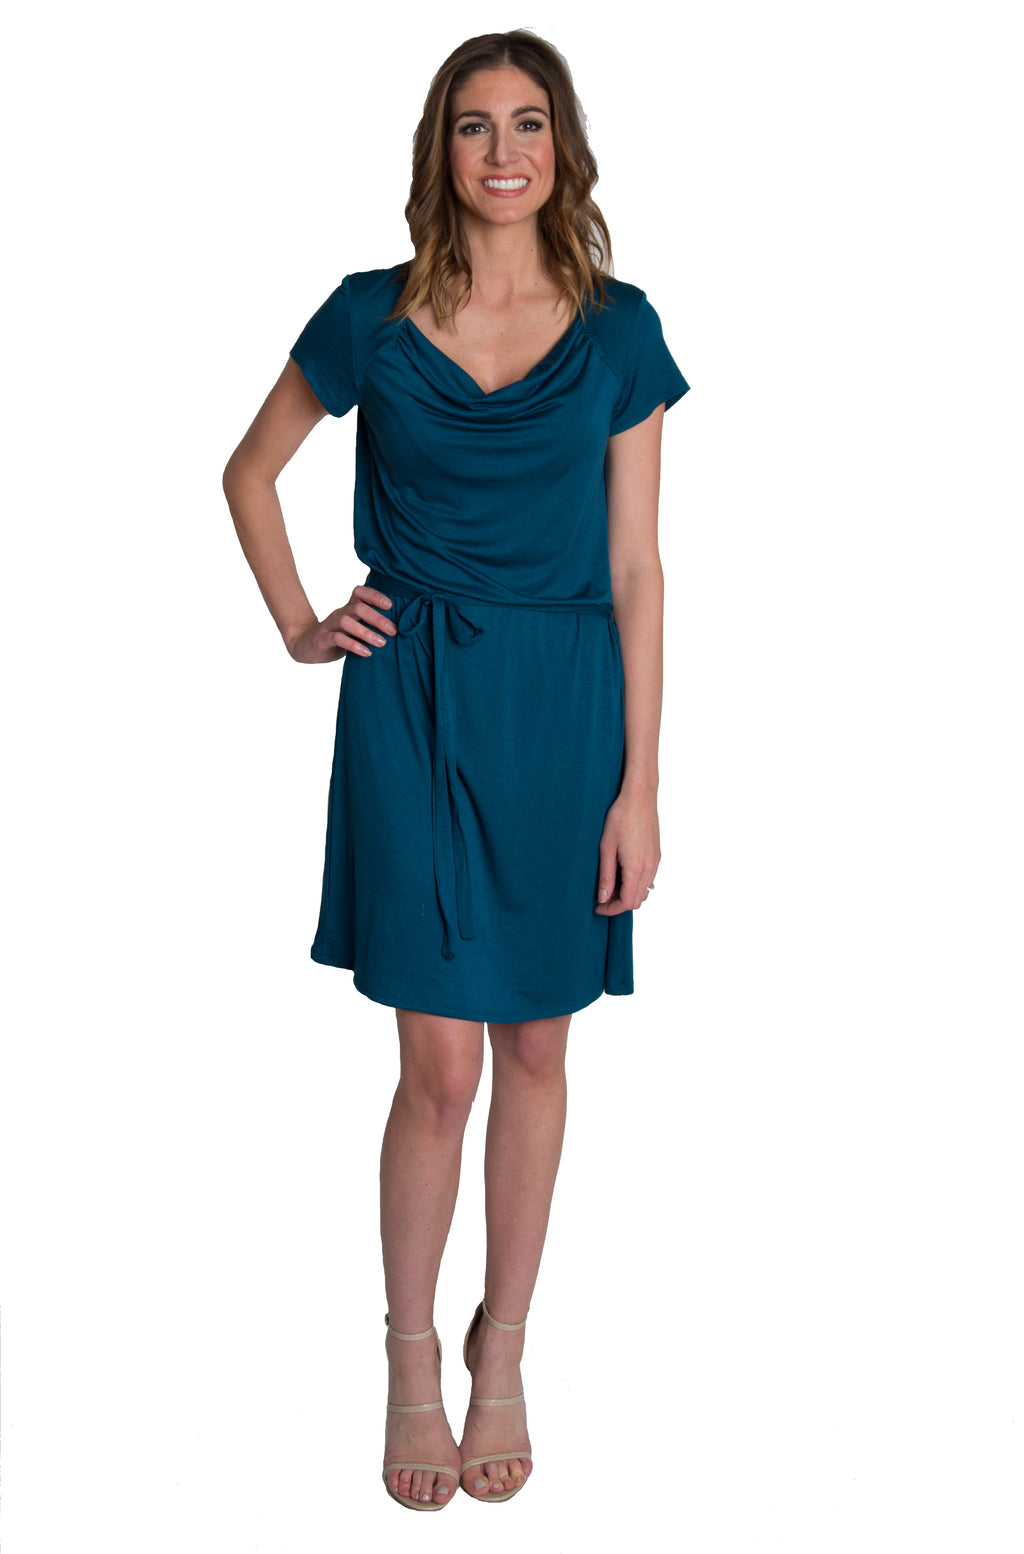 Chic Cowl Nursing Dress - Teal